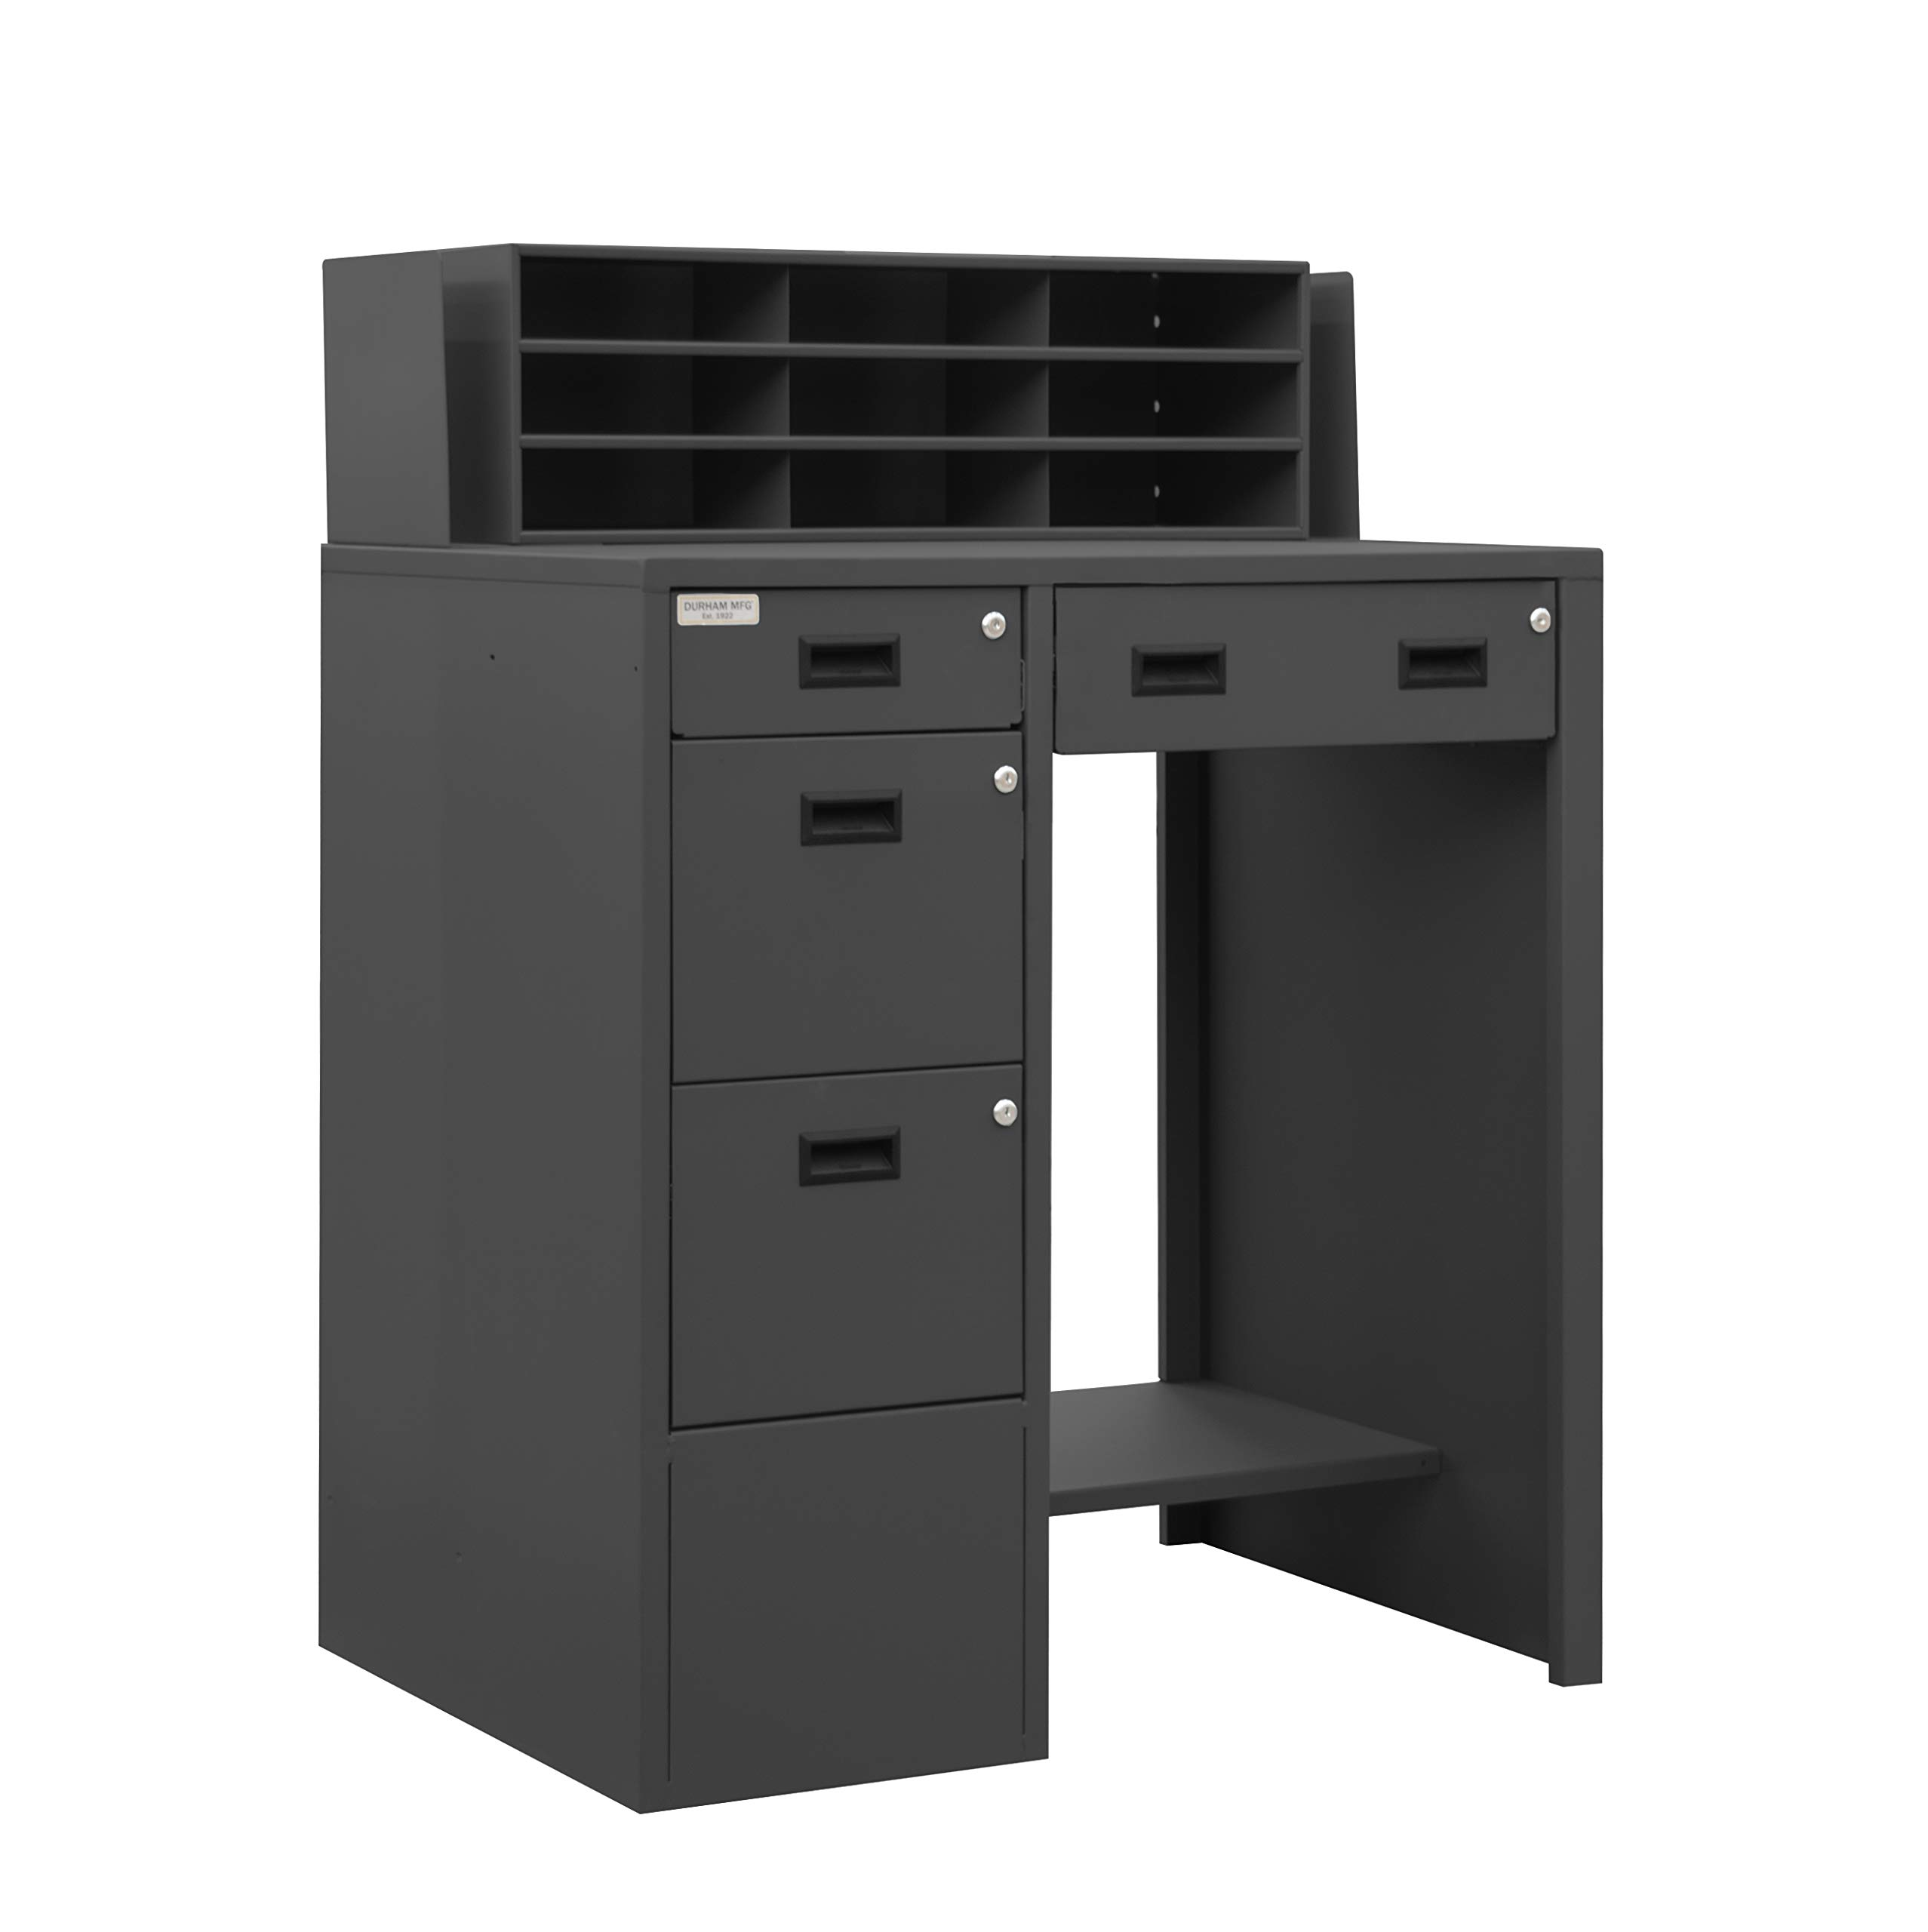 Durham 16 Gauge Steel Stationary File Work Station and Stand Up Desk, SFWS-392955-95 by Durham